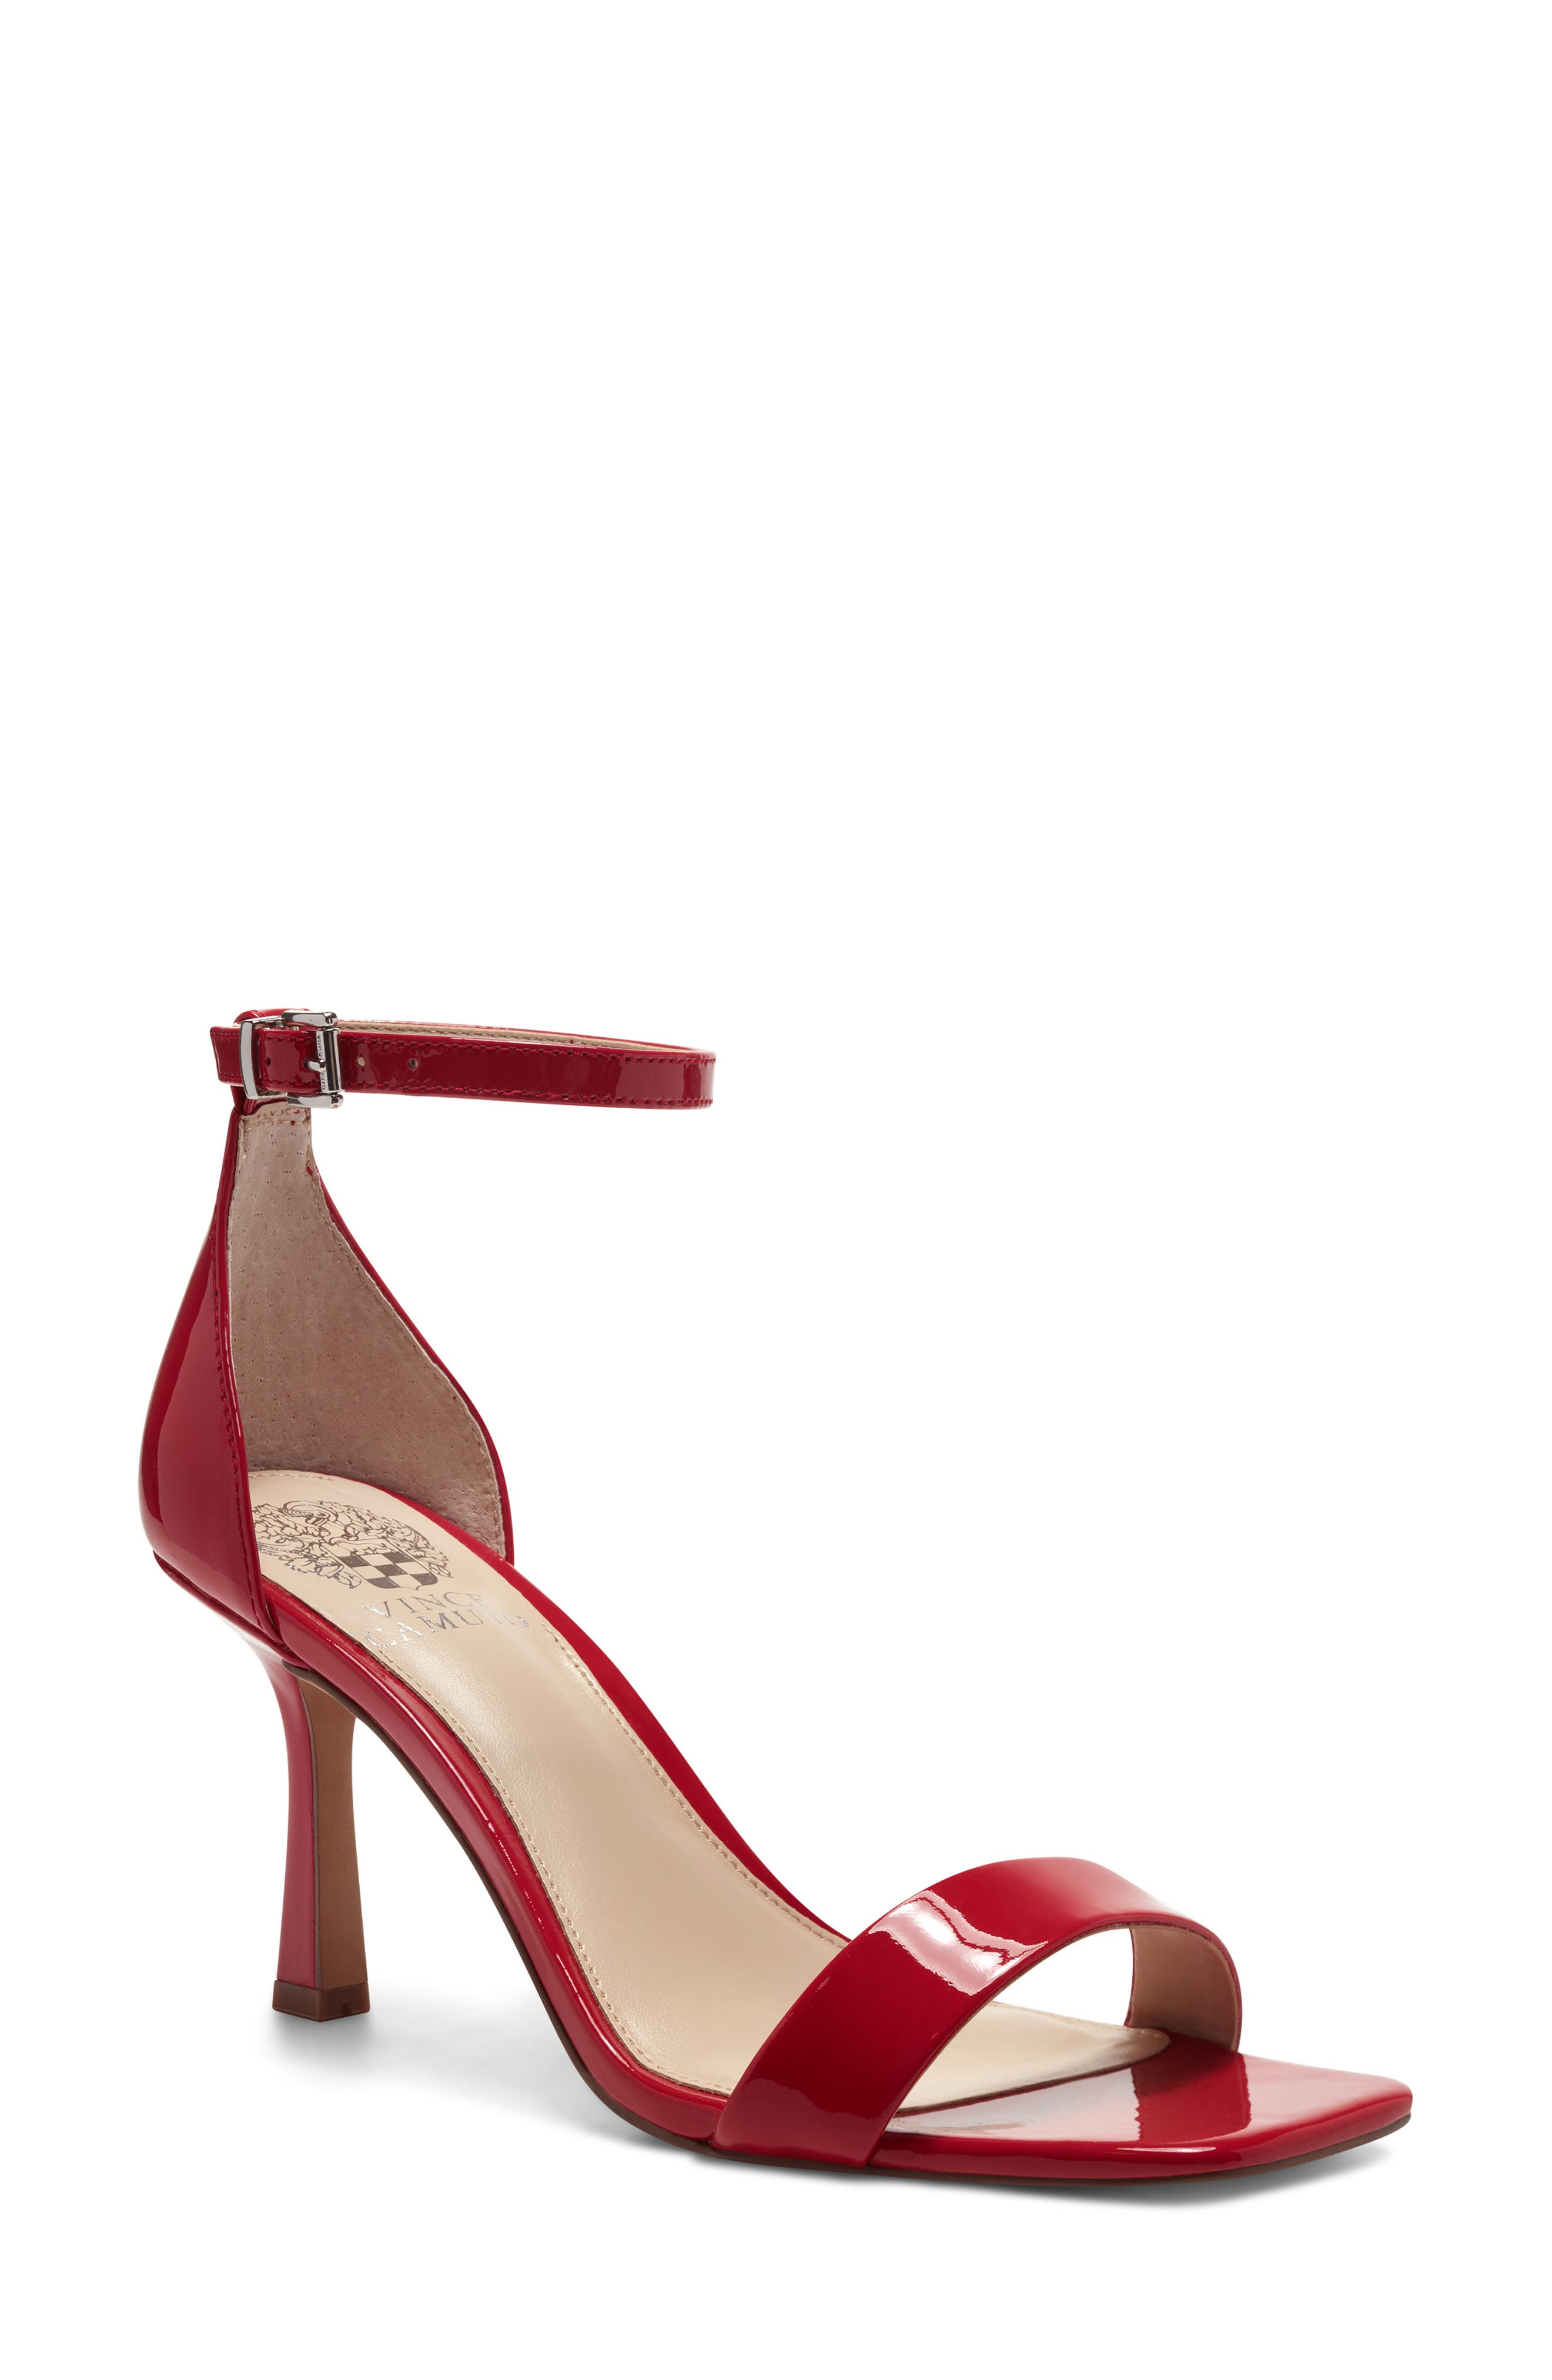 heels leather Sandals inner soles 9 14 strappy red vintage size 7 12 or 38 heel 4 14 pumps